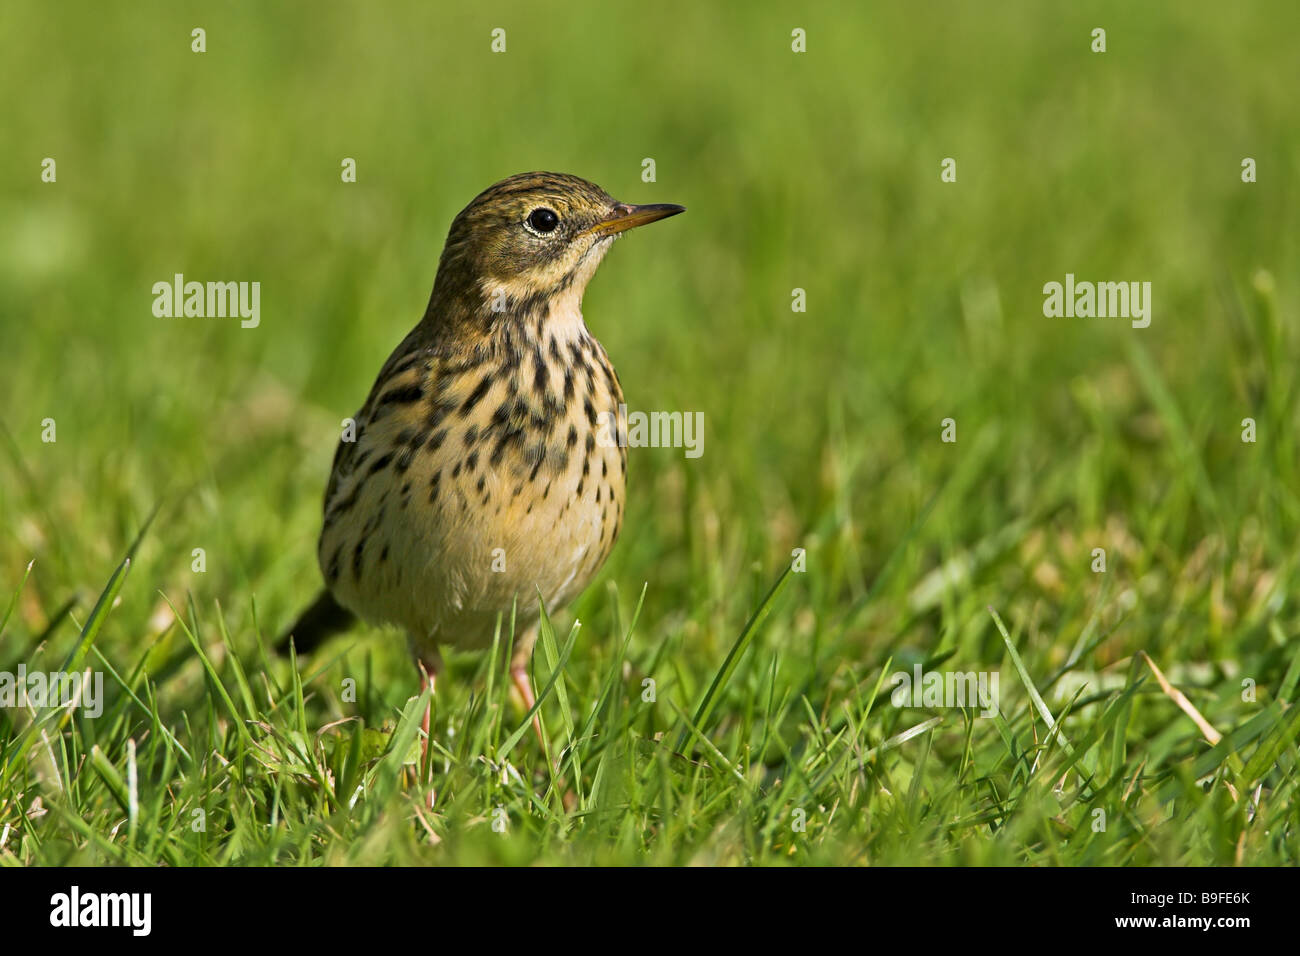 Close-up of Meadow Pipit (Anthus pratensis) in field Stock Photo